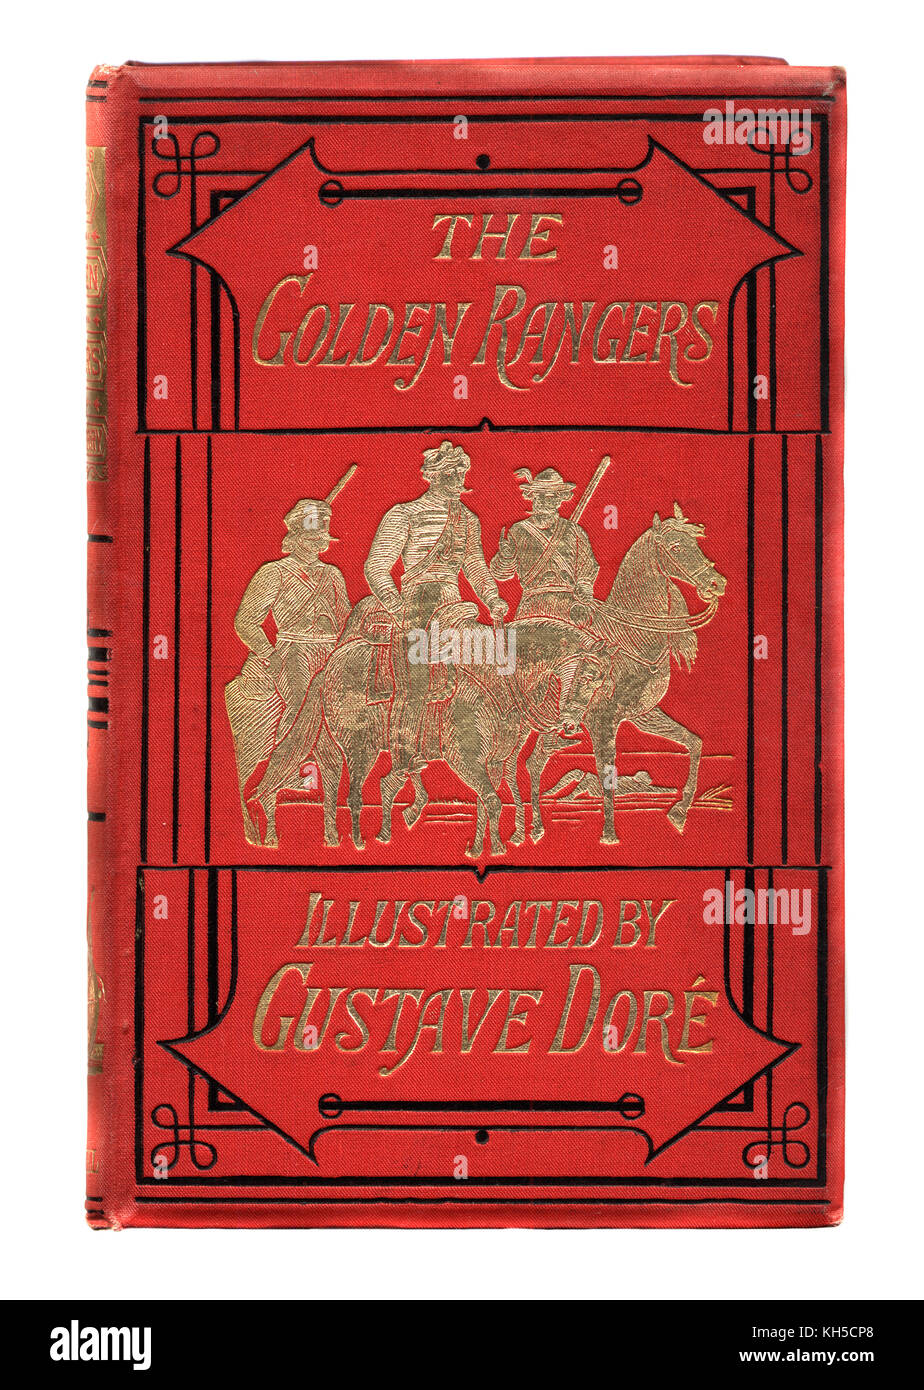 Victorian book cover, Golden Rangers by Gabriel Ferry, illustrated  by Gustave Dore. - Stock Image